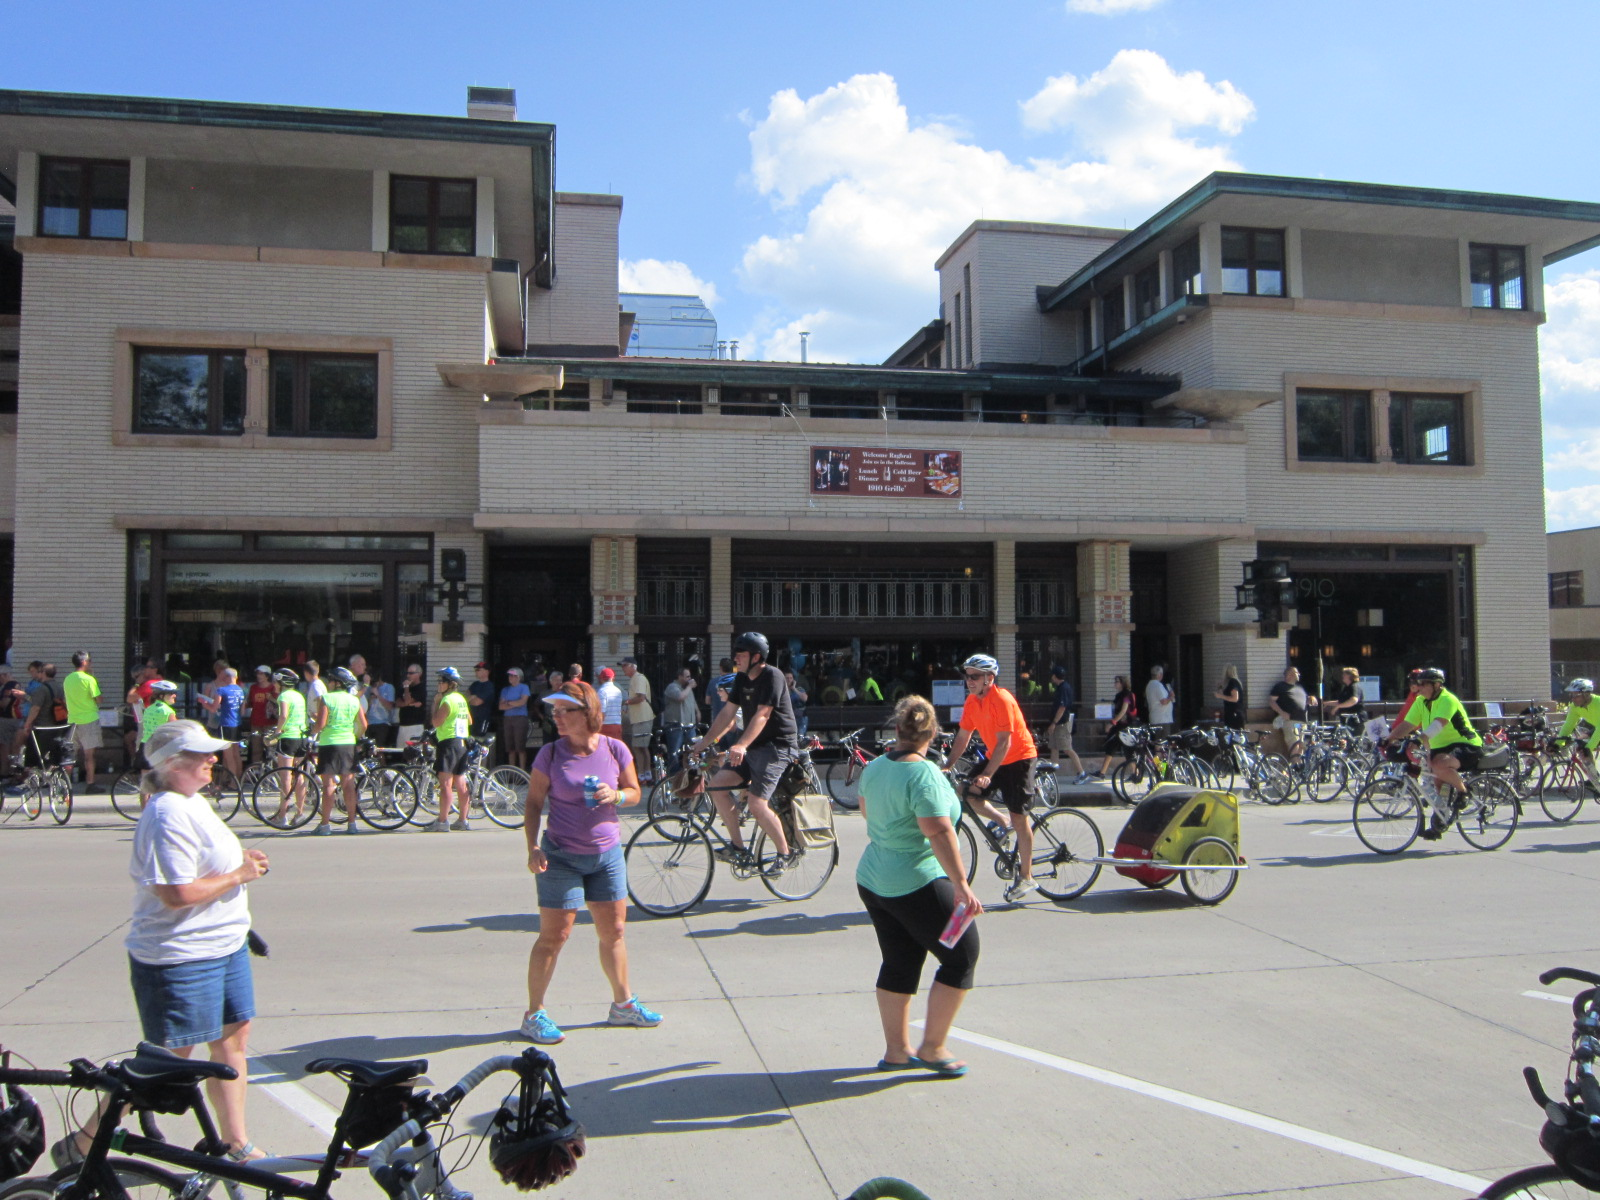 Park Inn Hotel Mason City RAGBRAI July 23.JPG